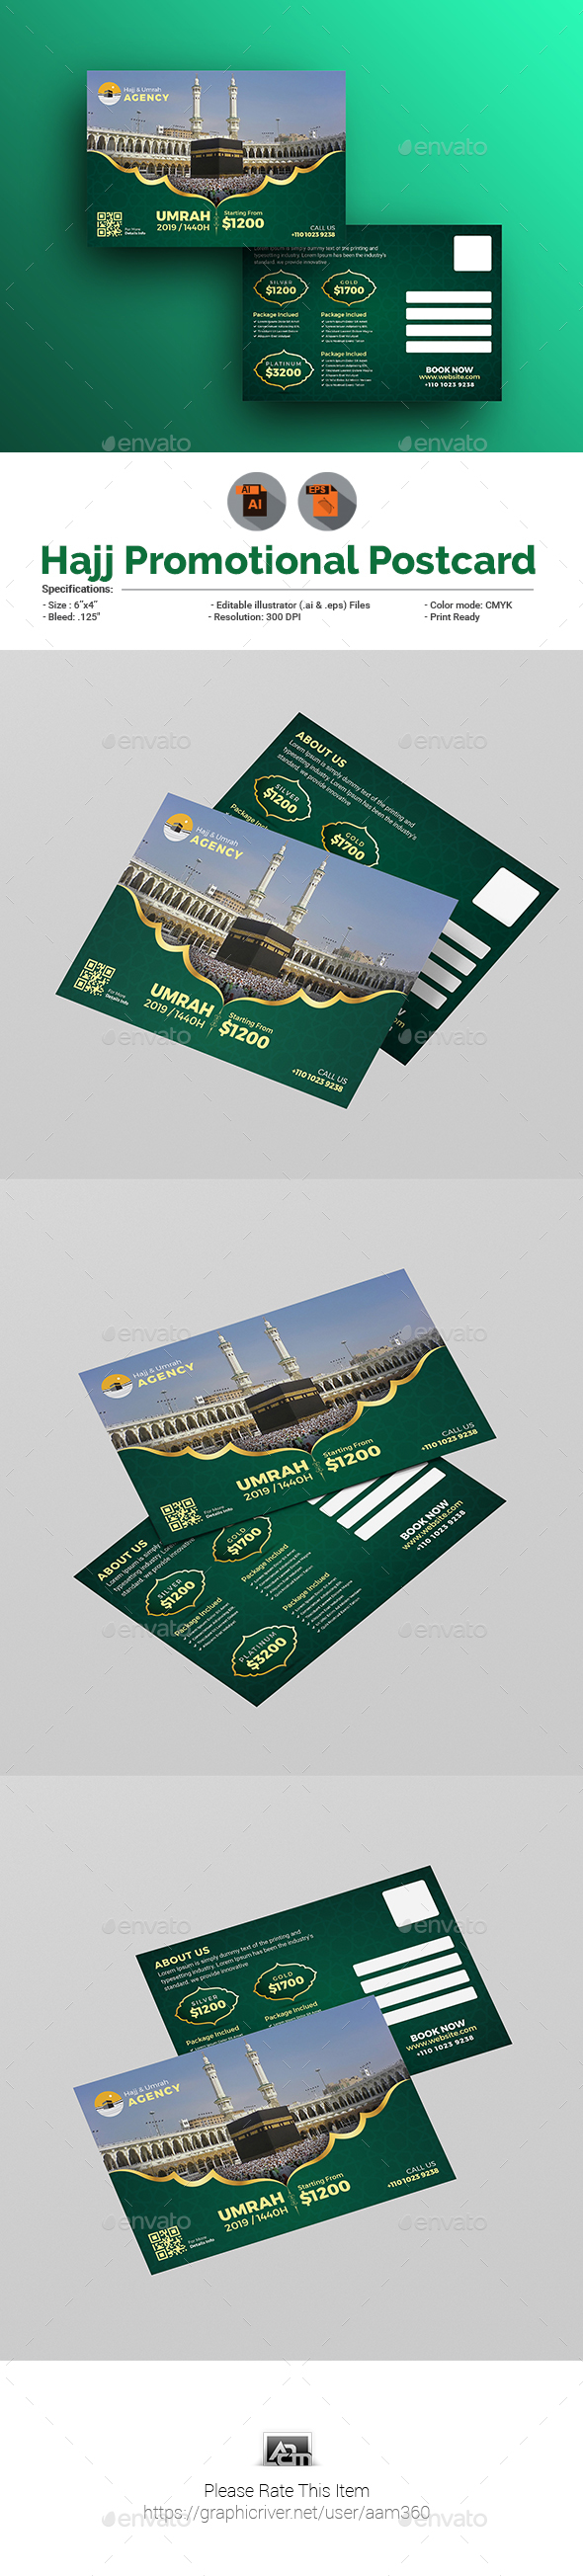 Hajj Promotional Postcard - Cards & Invites Print Templates